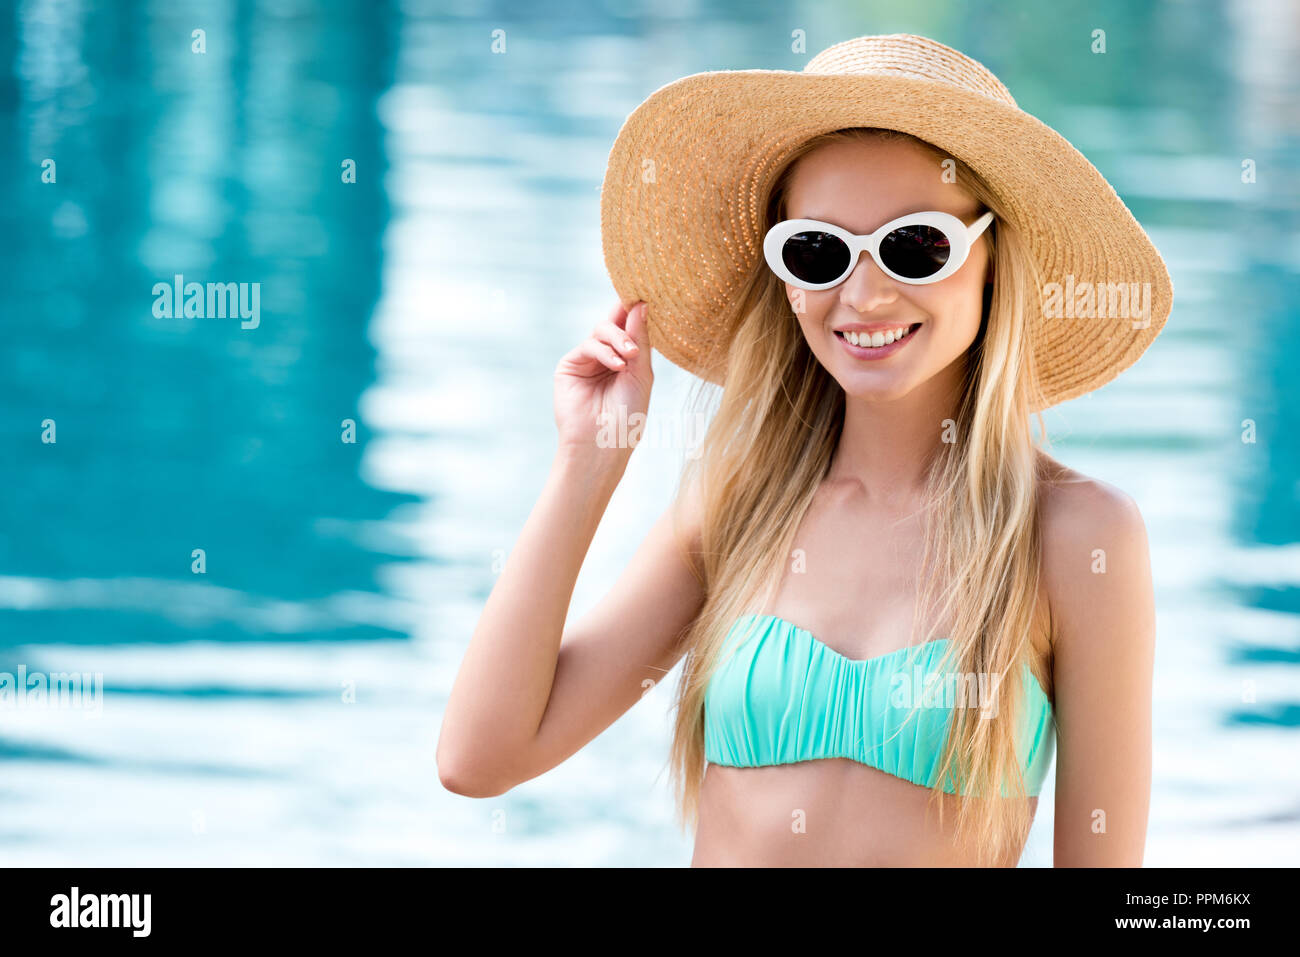 beautiful young woman in straw hat with vintage sunglasses and bikini at poolside - Stock Image